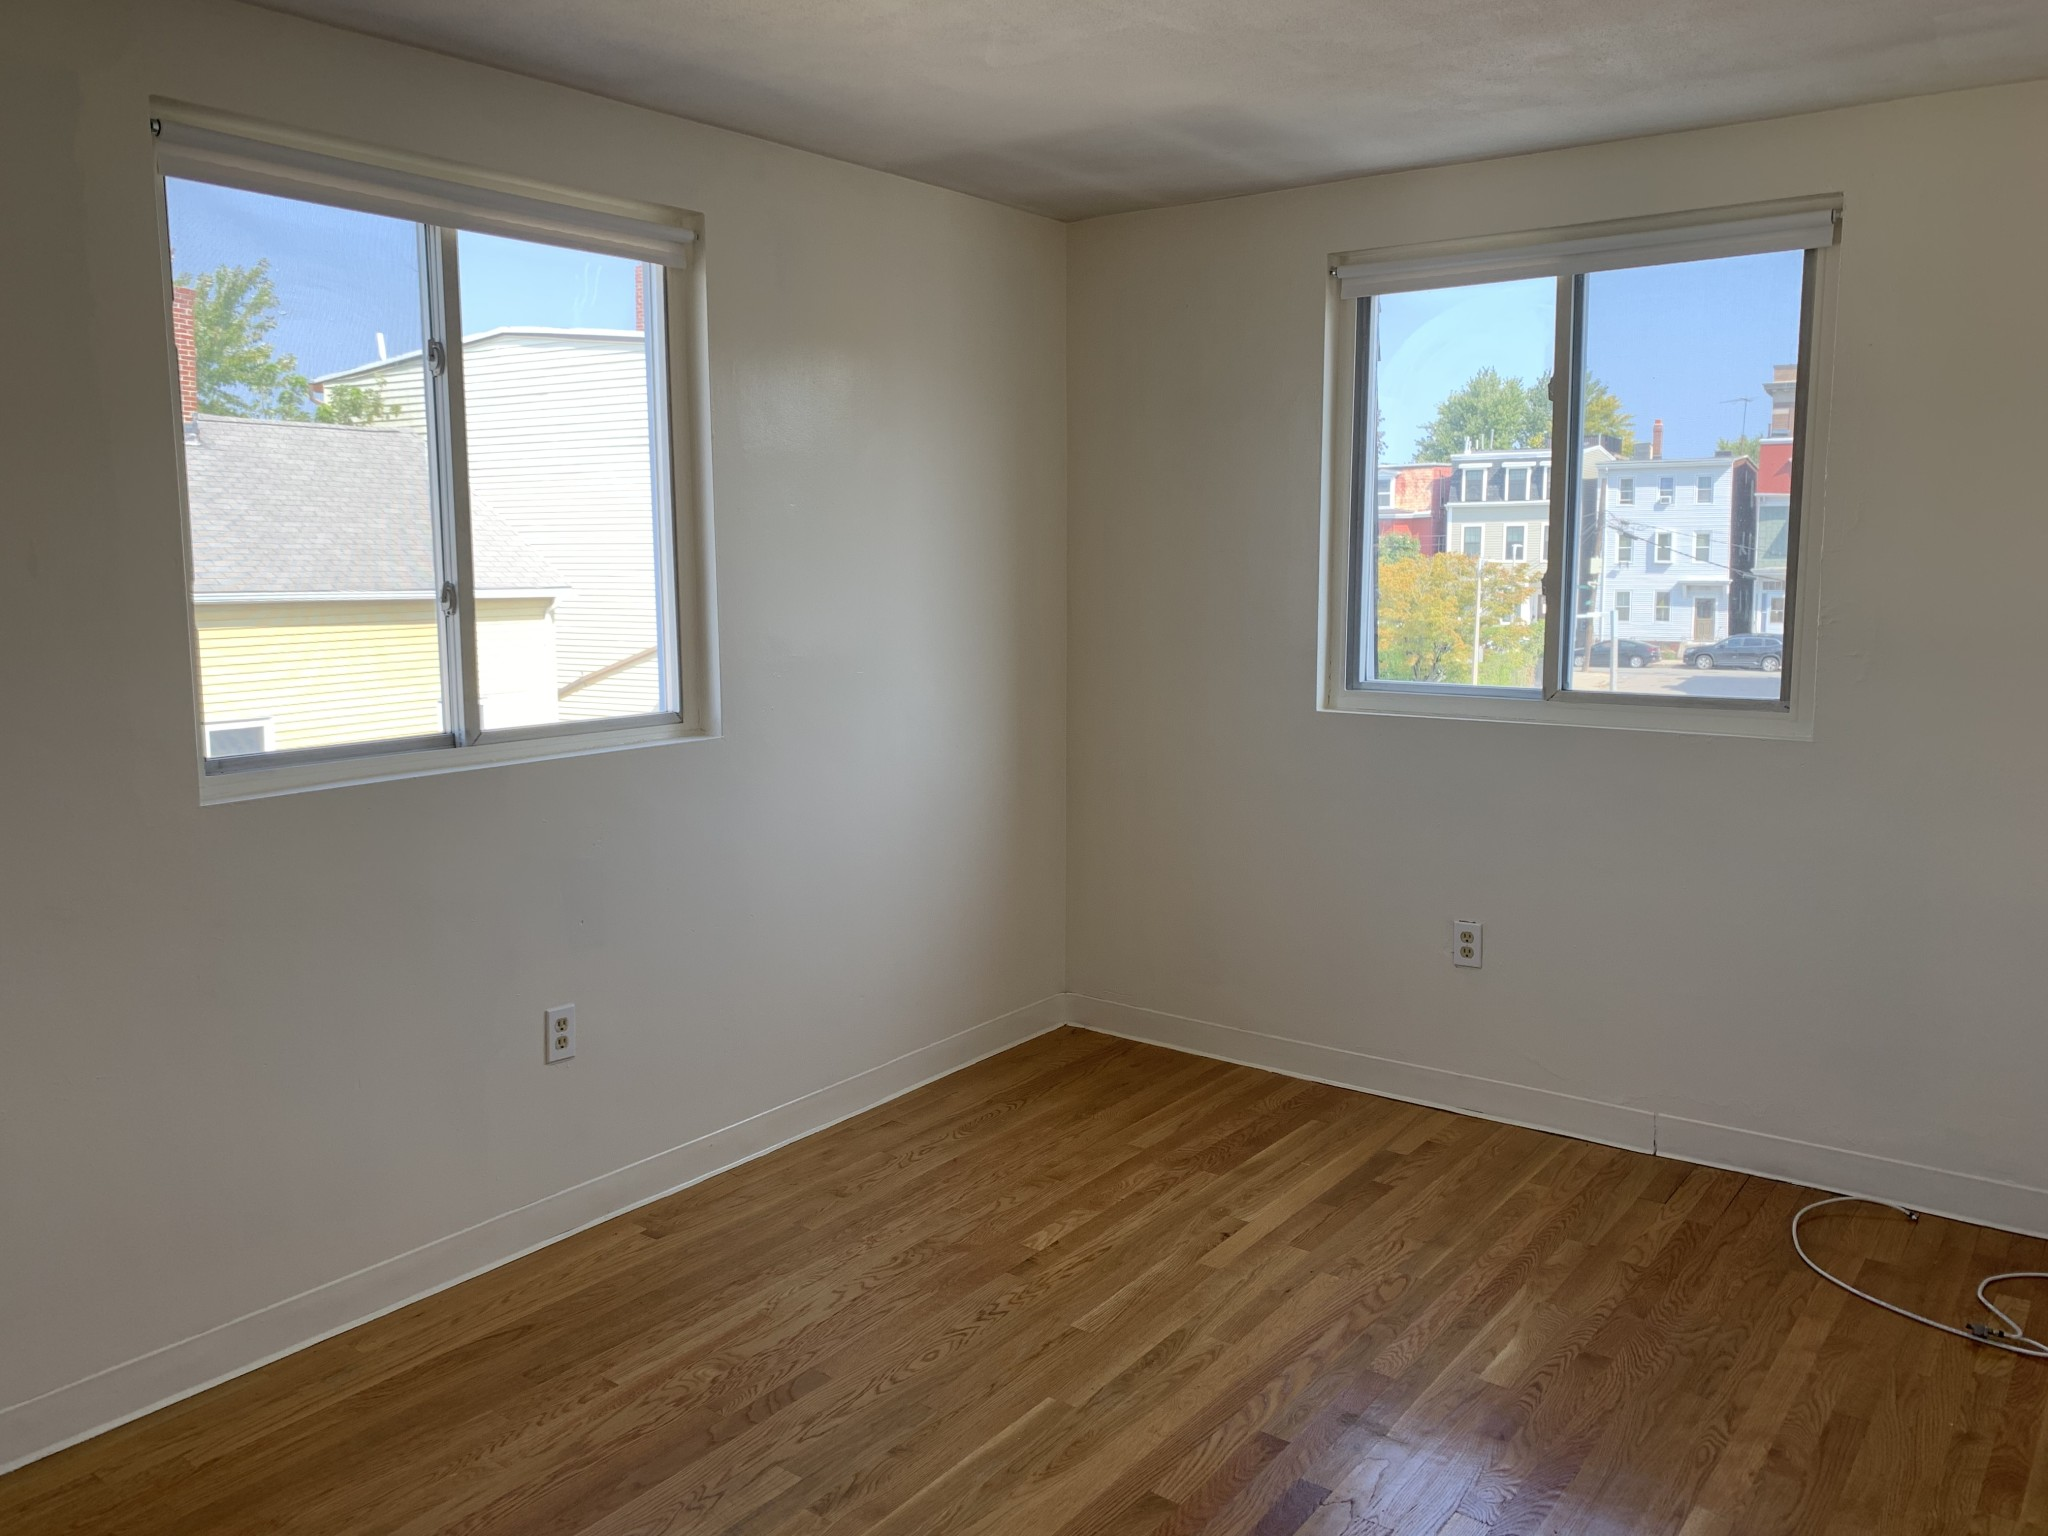 2 Beds, 1 Bath apartment in Boston, South Boston for $2,100